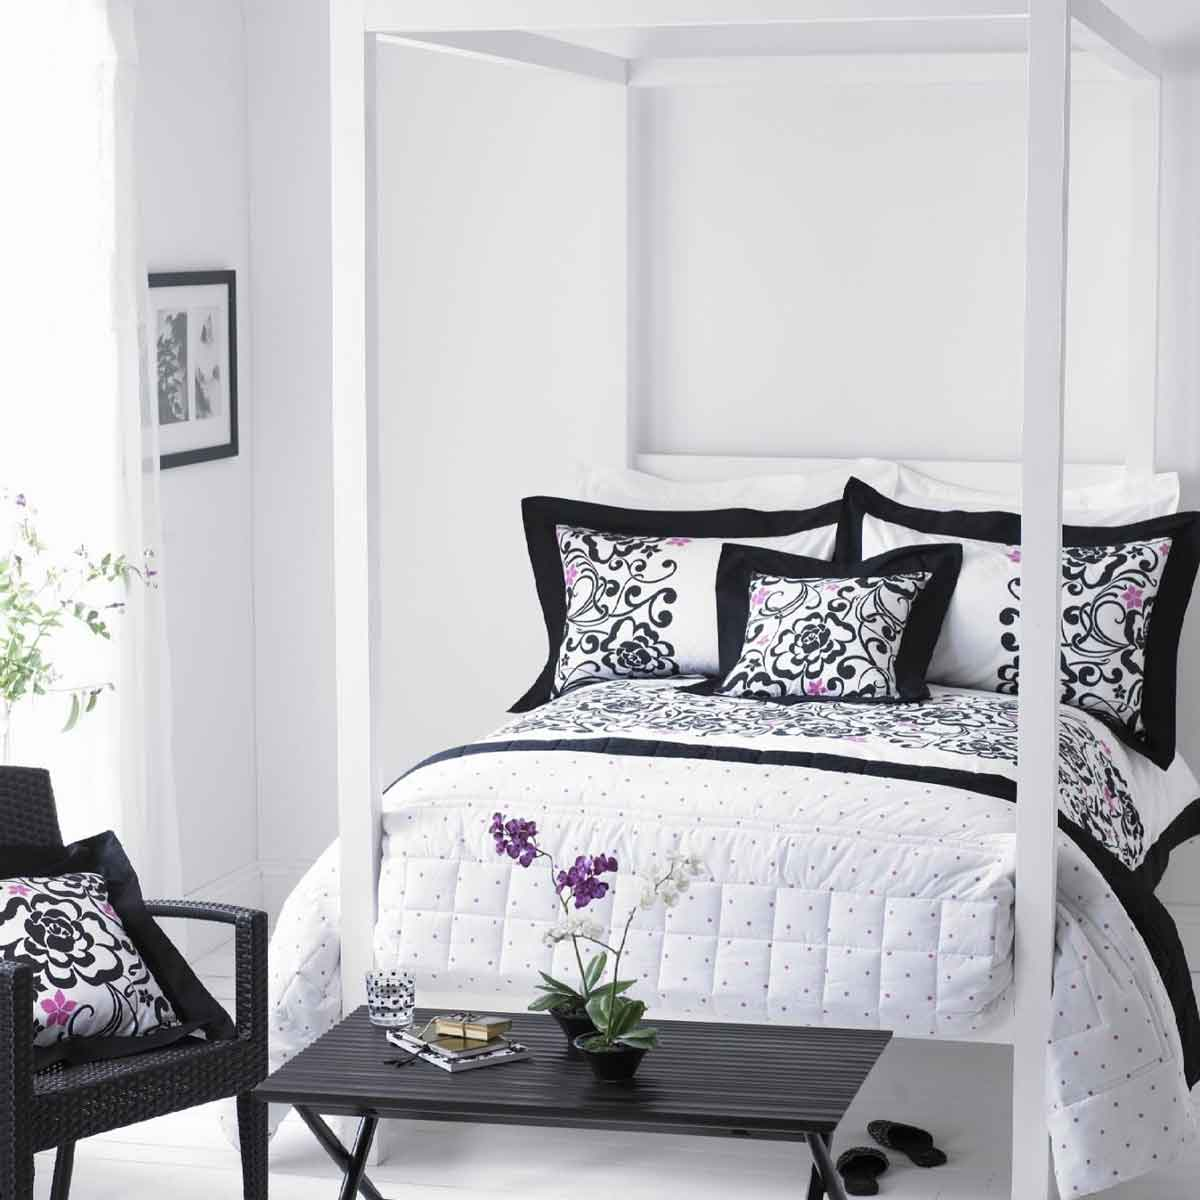 wonderful bedroom decor ideas in black and white home design - Black White Bedroom Decorating Ideas